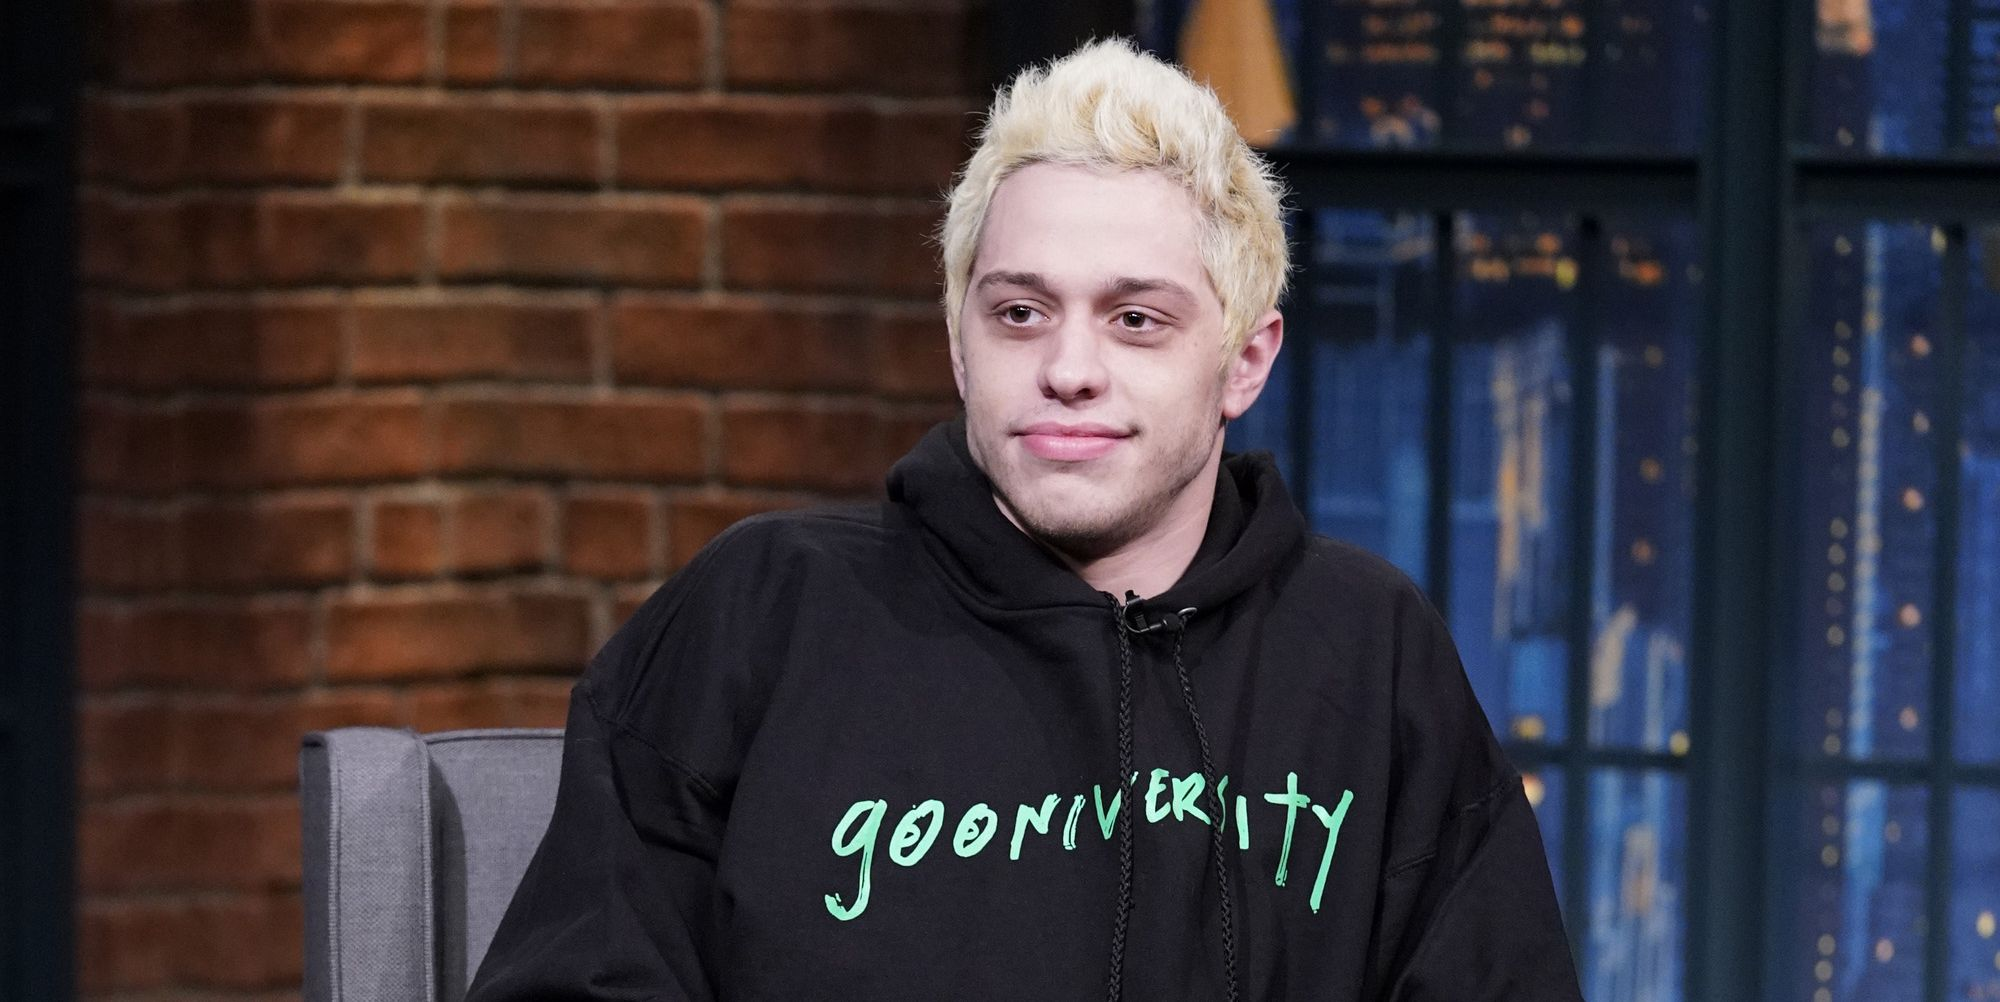 Yikes, Pete Davidson's Singing About Regrets on His Instagram Stories